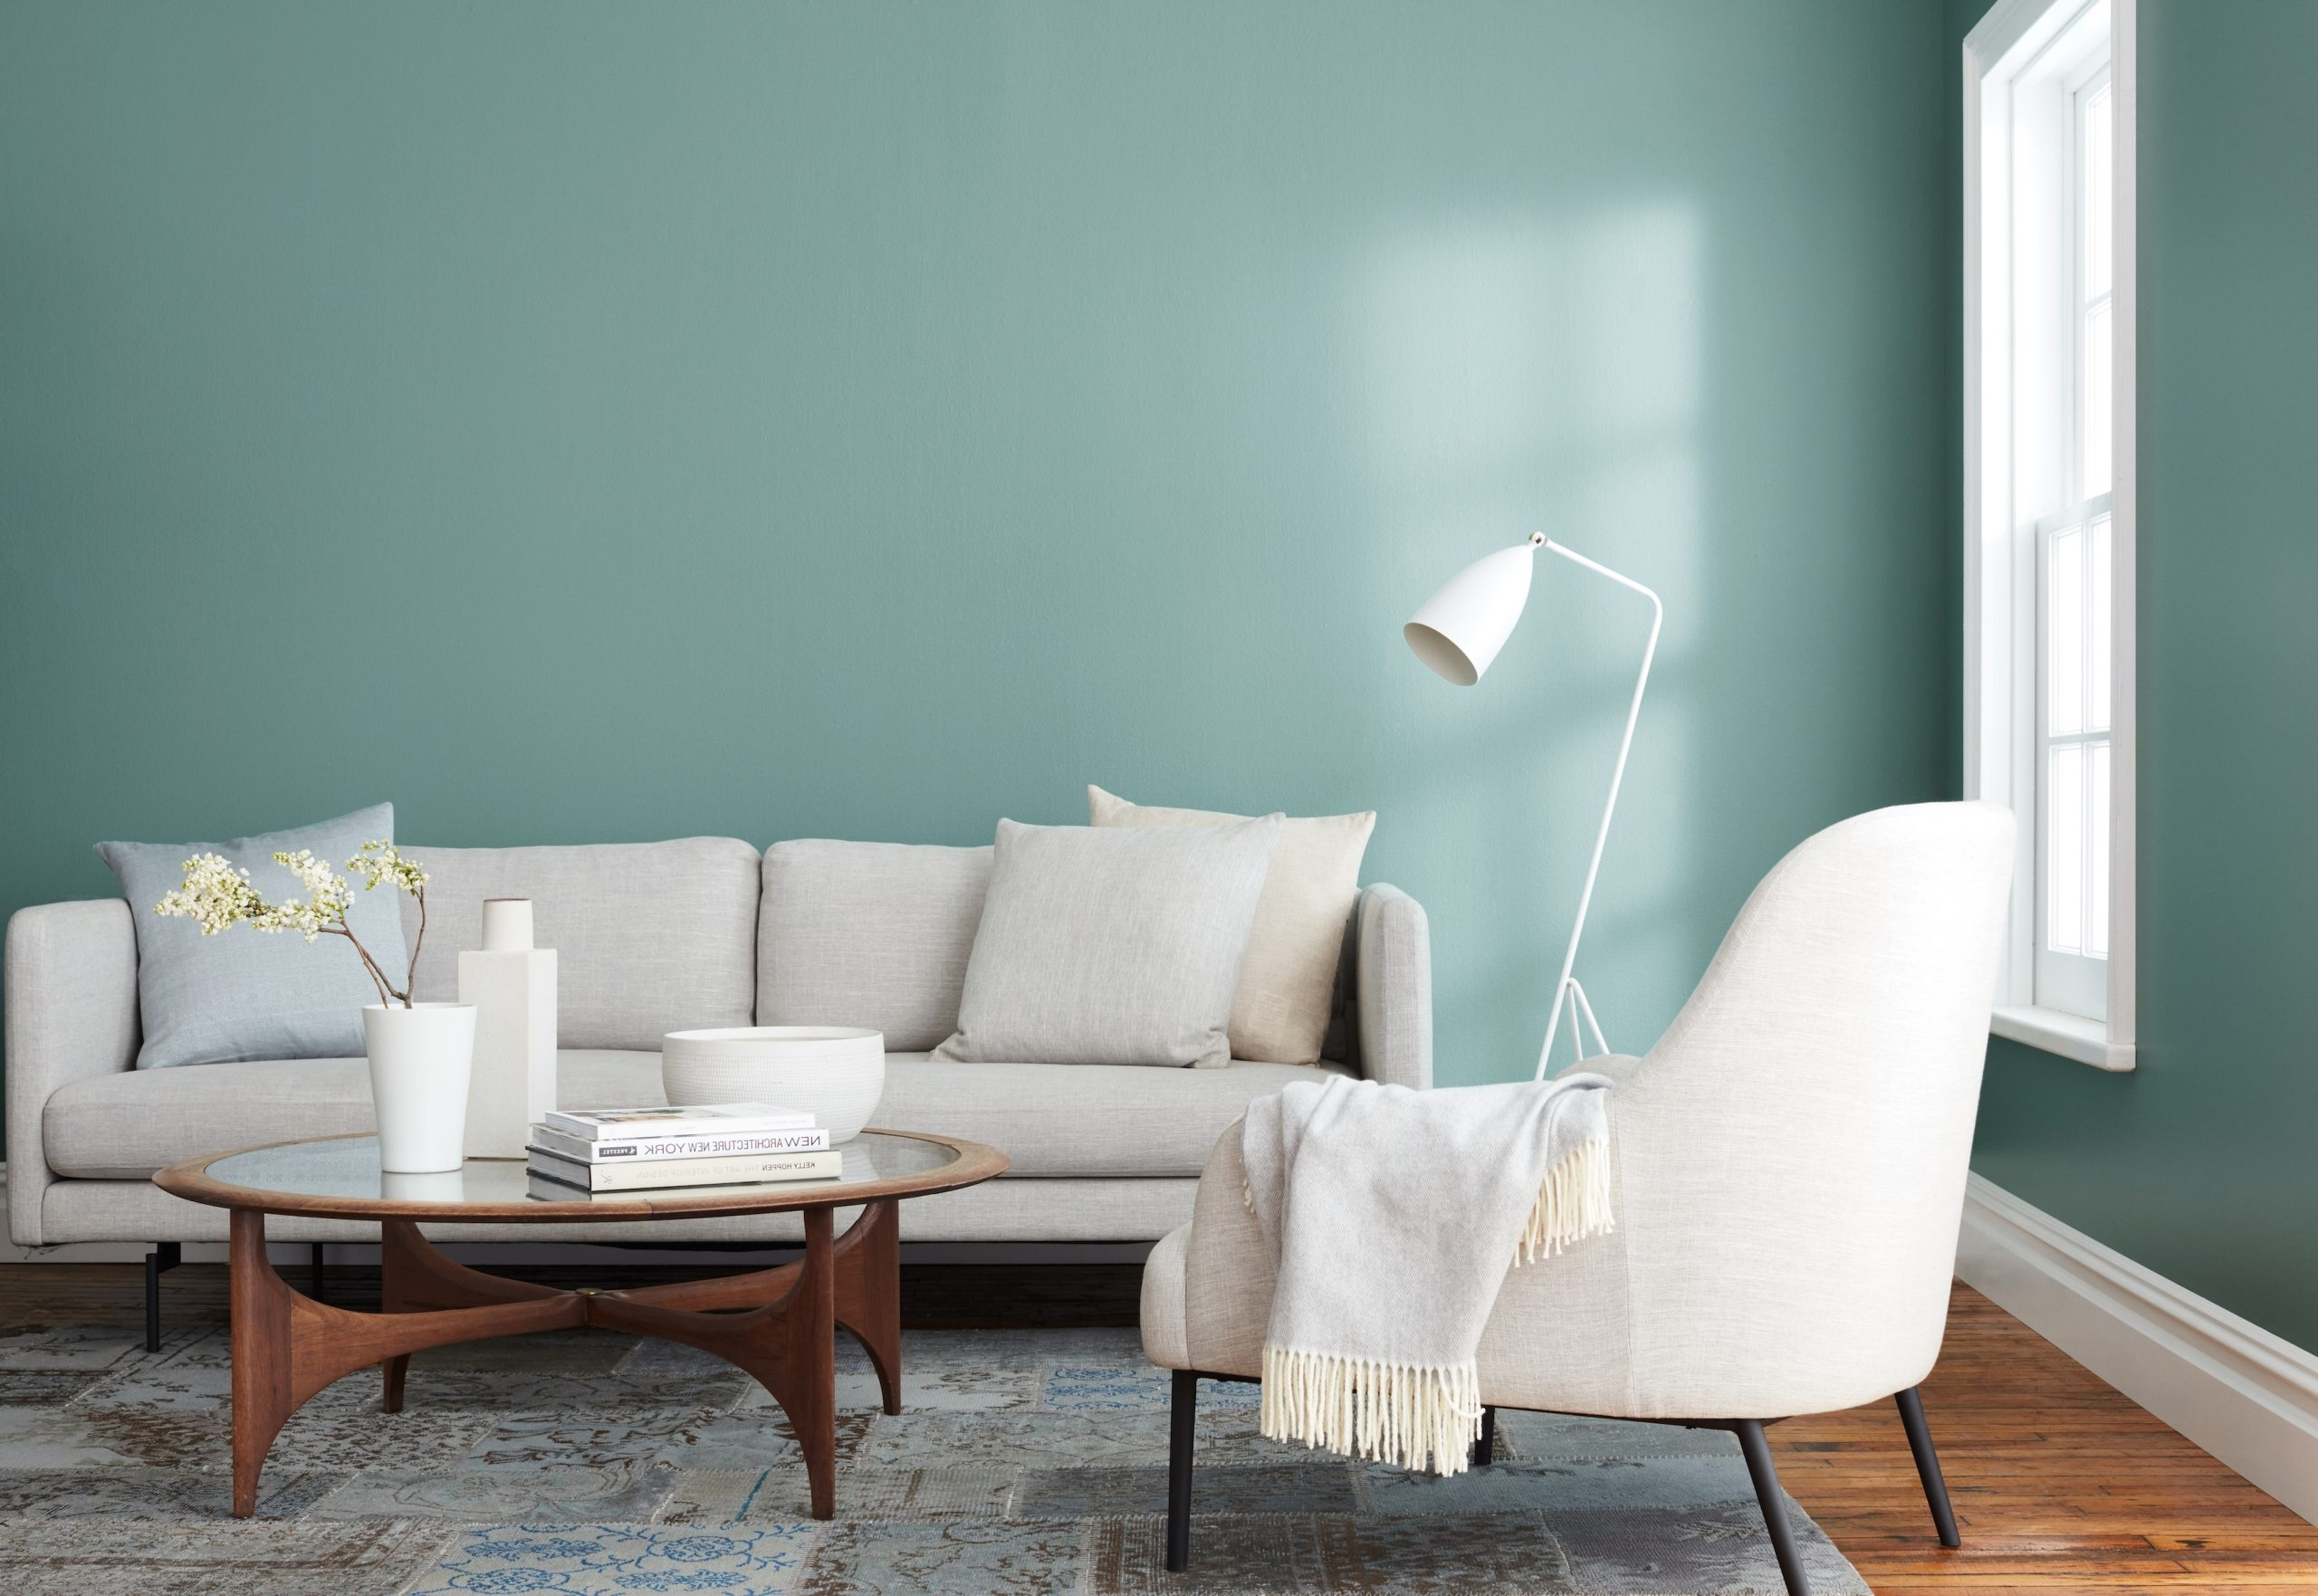 The #1 Secret To Choosing A Paint Color   Color And Light 10+ North Facing Living Room Colour Inspirations